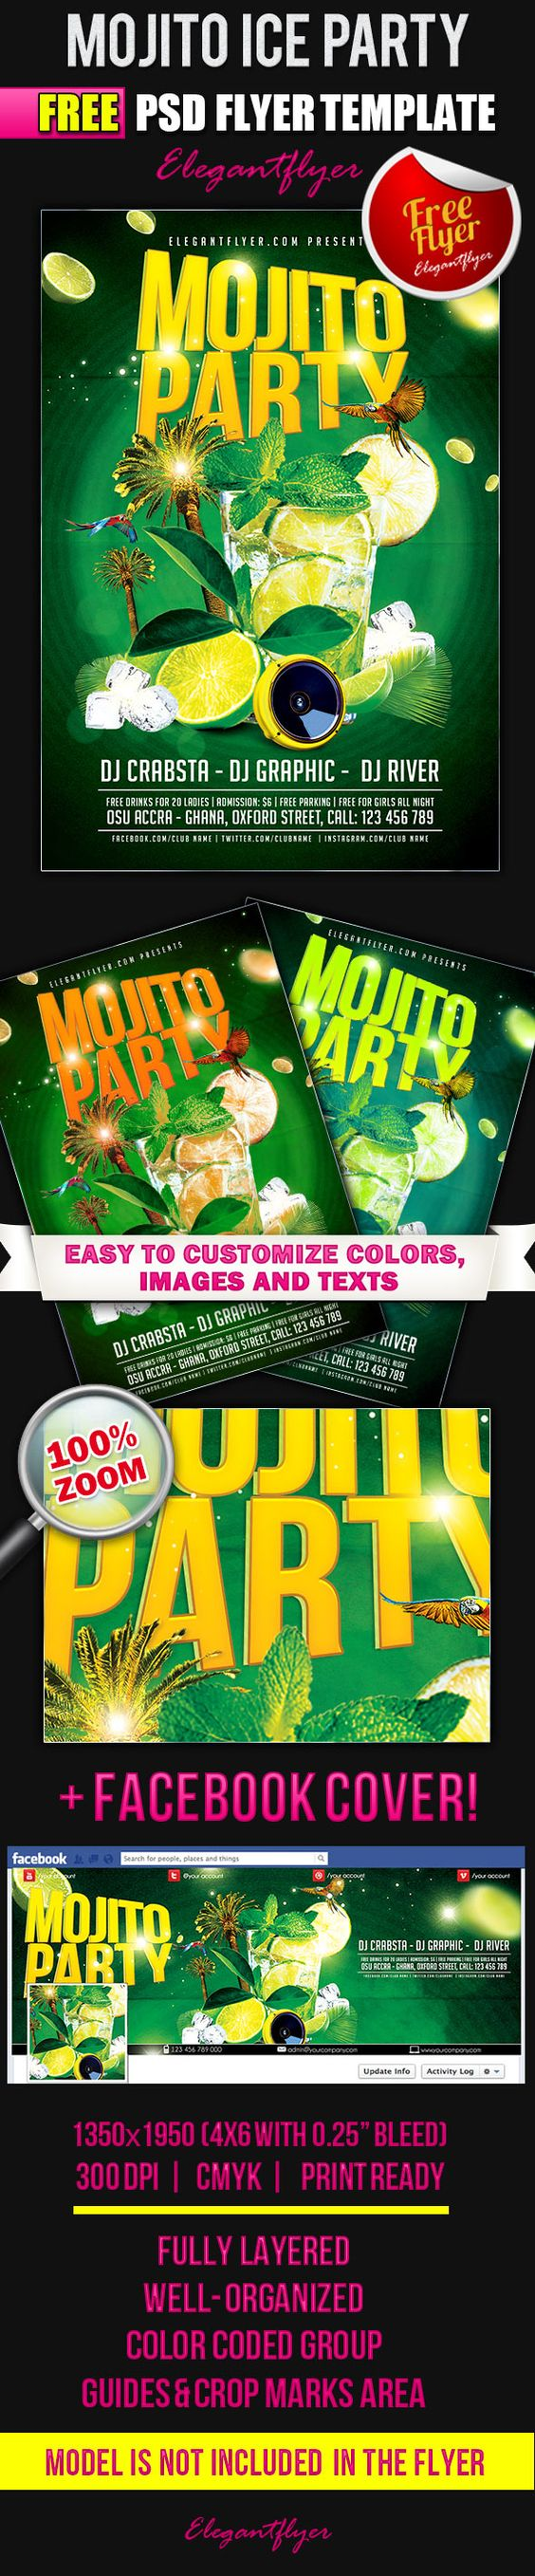 mojito ice party flyer psd template facebook cover mojito ice party flyer psd template facebook cover